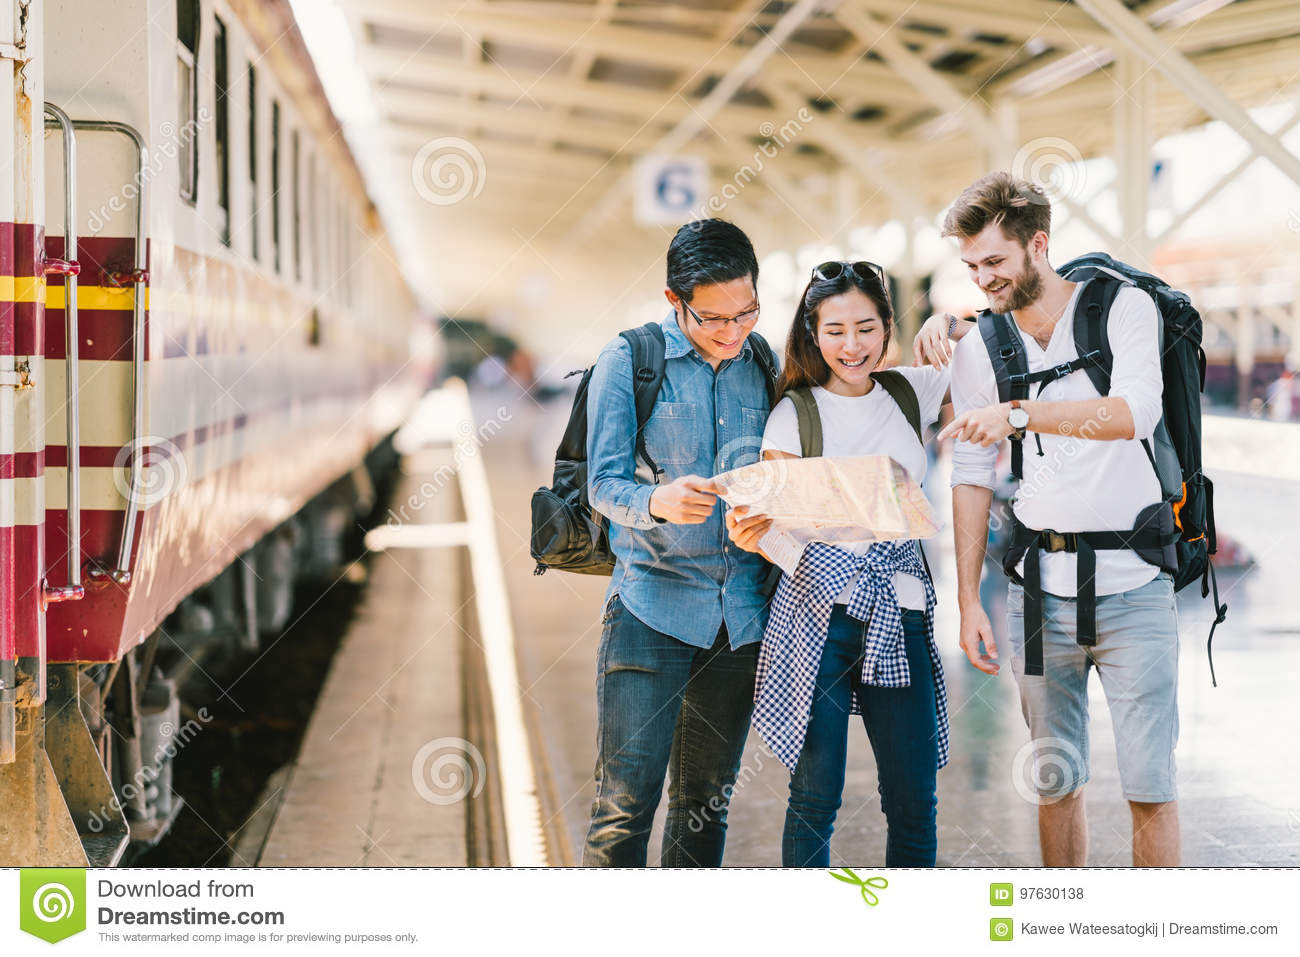 Multiethnic group of friends, backpack travelers, or college students using local map navigation together at train station